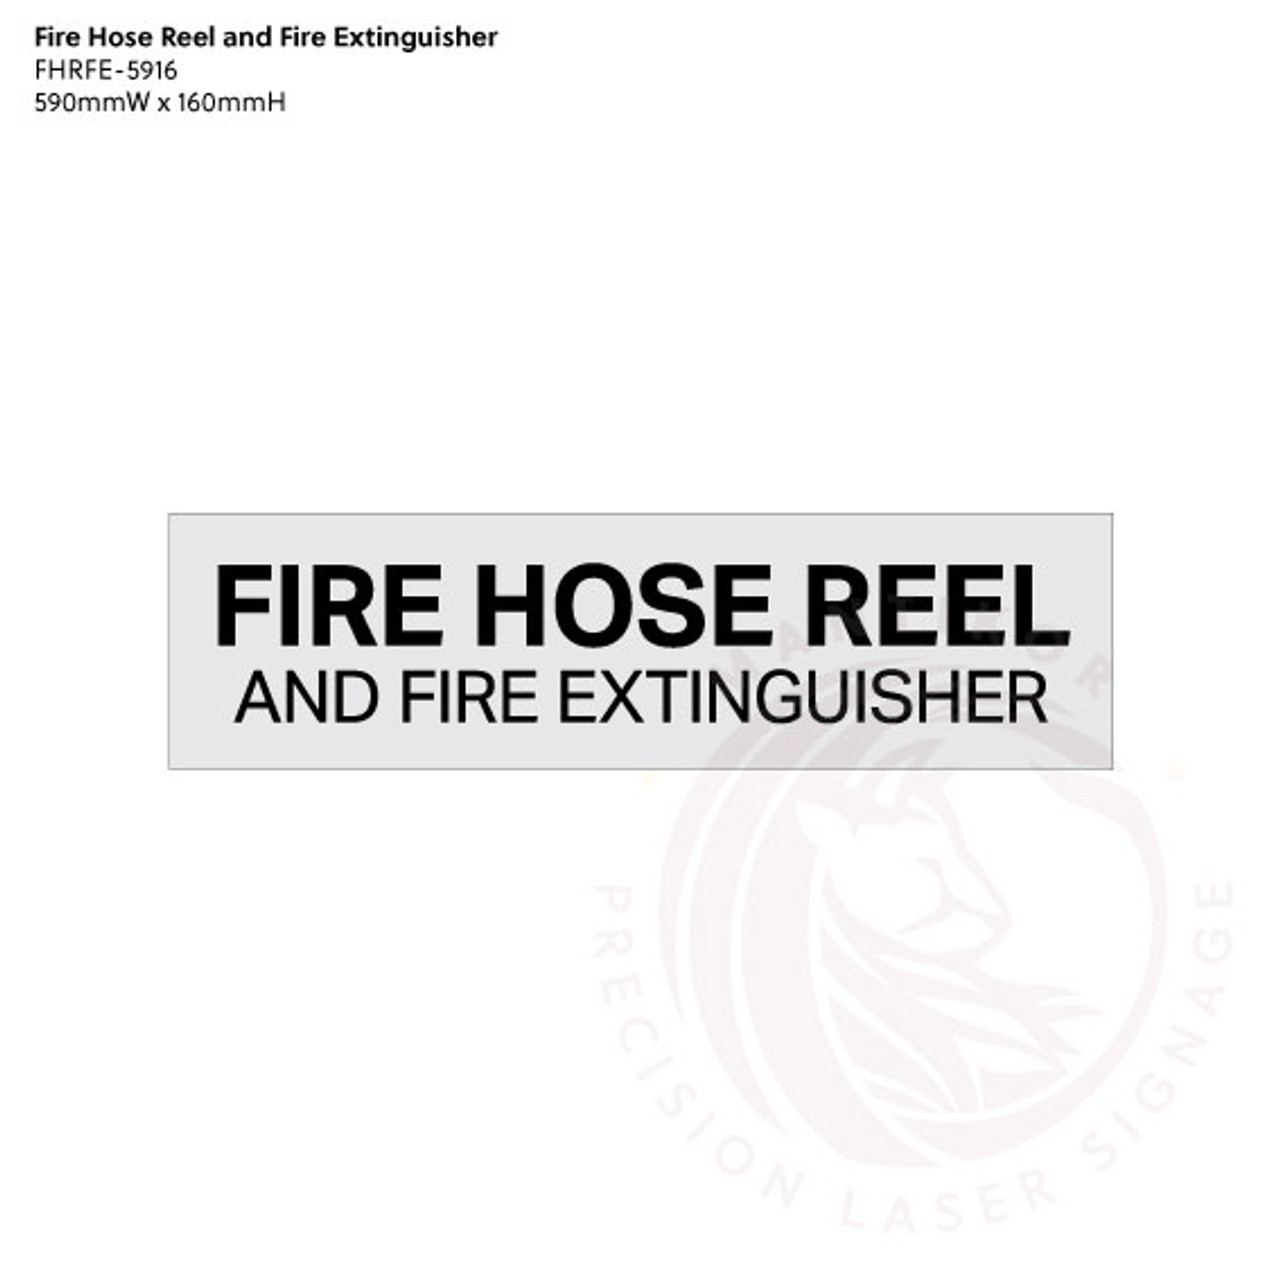 Fire Hose Reel and Fire Extinguisher - Standard statutory sign, compliant with the Building Code of Australia requirements.